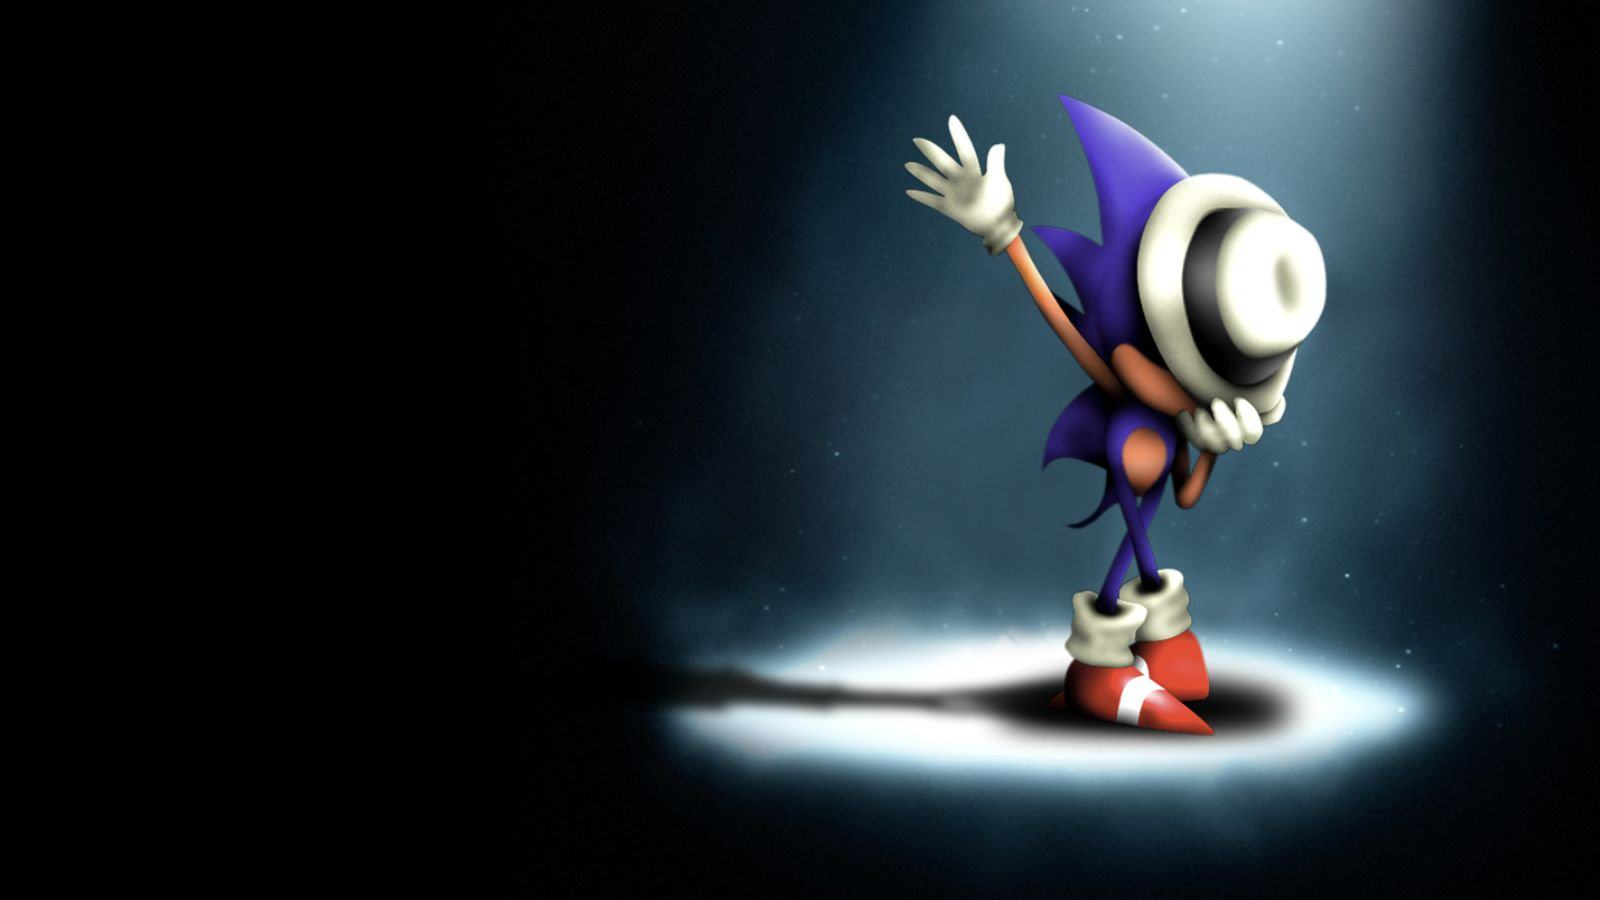 We May Finally Have Confirmation Of Michael Jacksons Involvement With Sonic 3 Sonic Michael Jackson 1